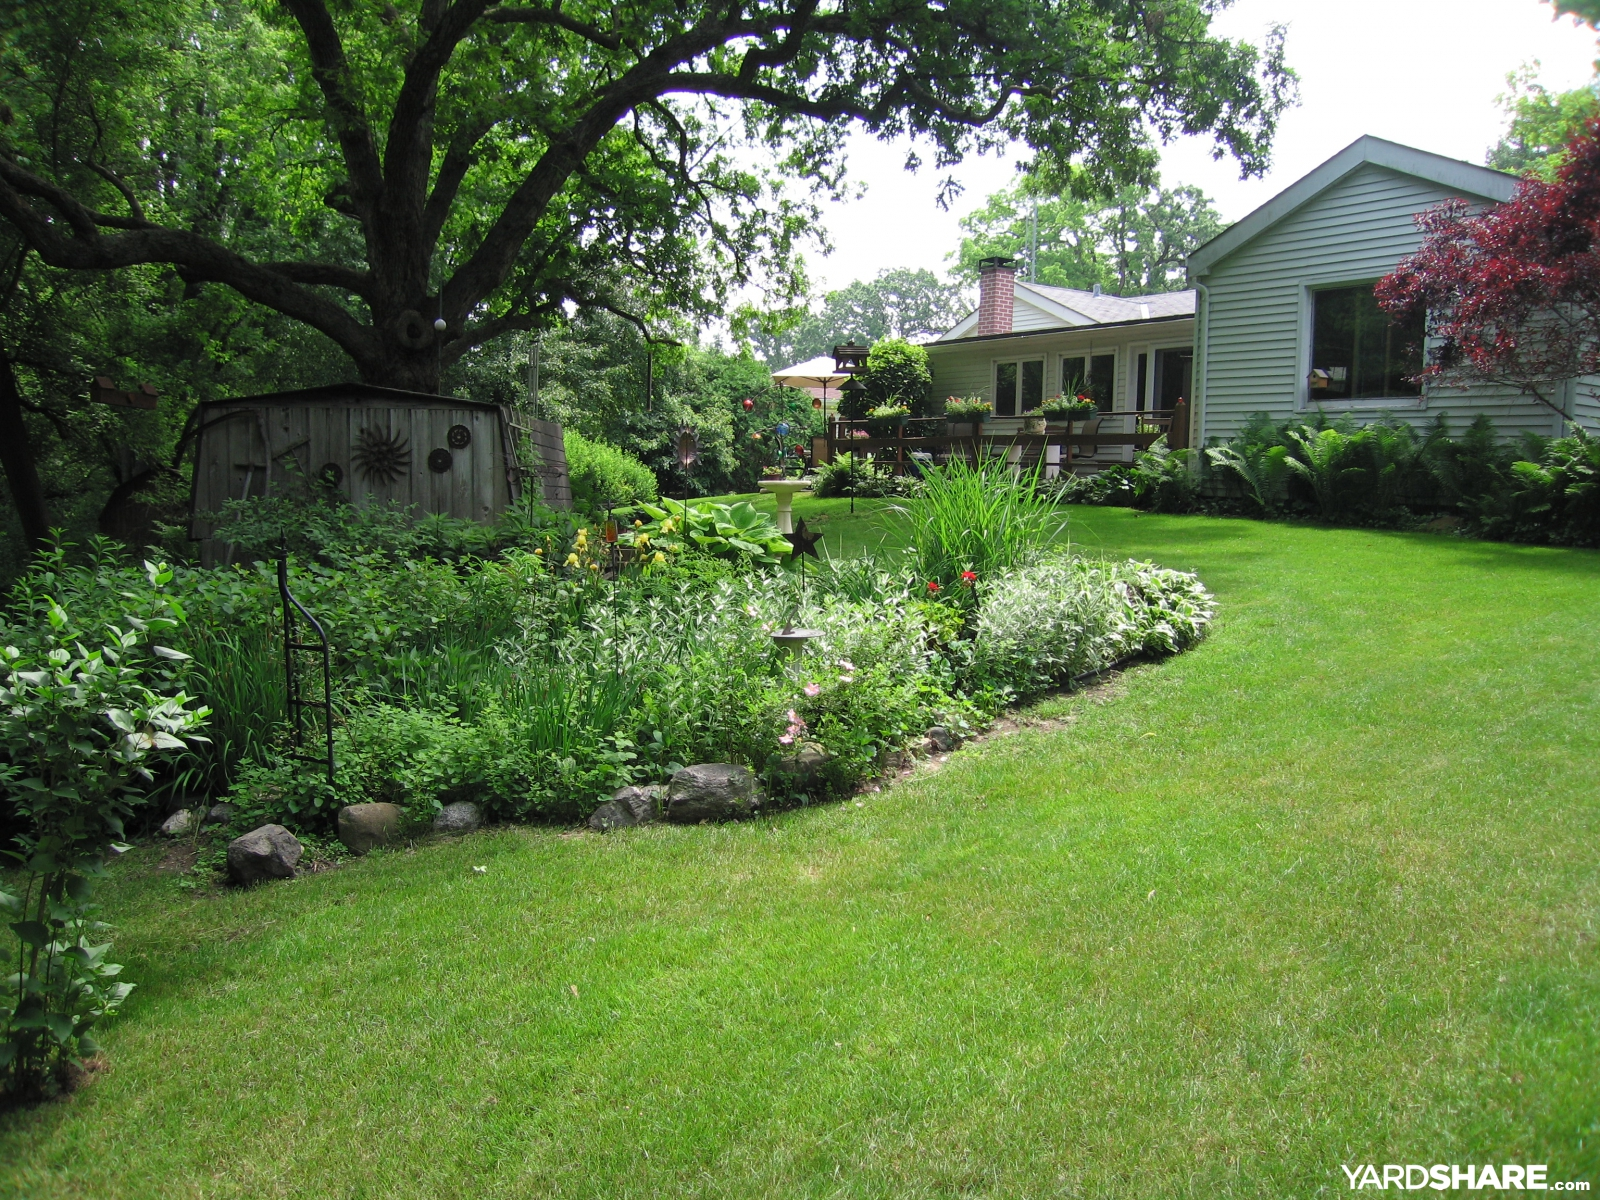 Landscaping ideas backyard at whispering oaks for Pics of landscaped backyards